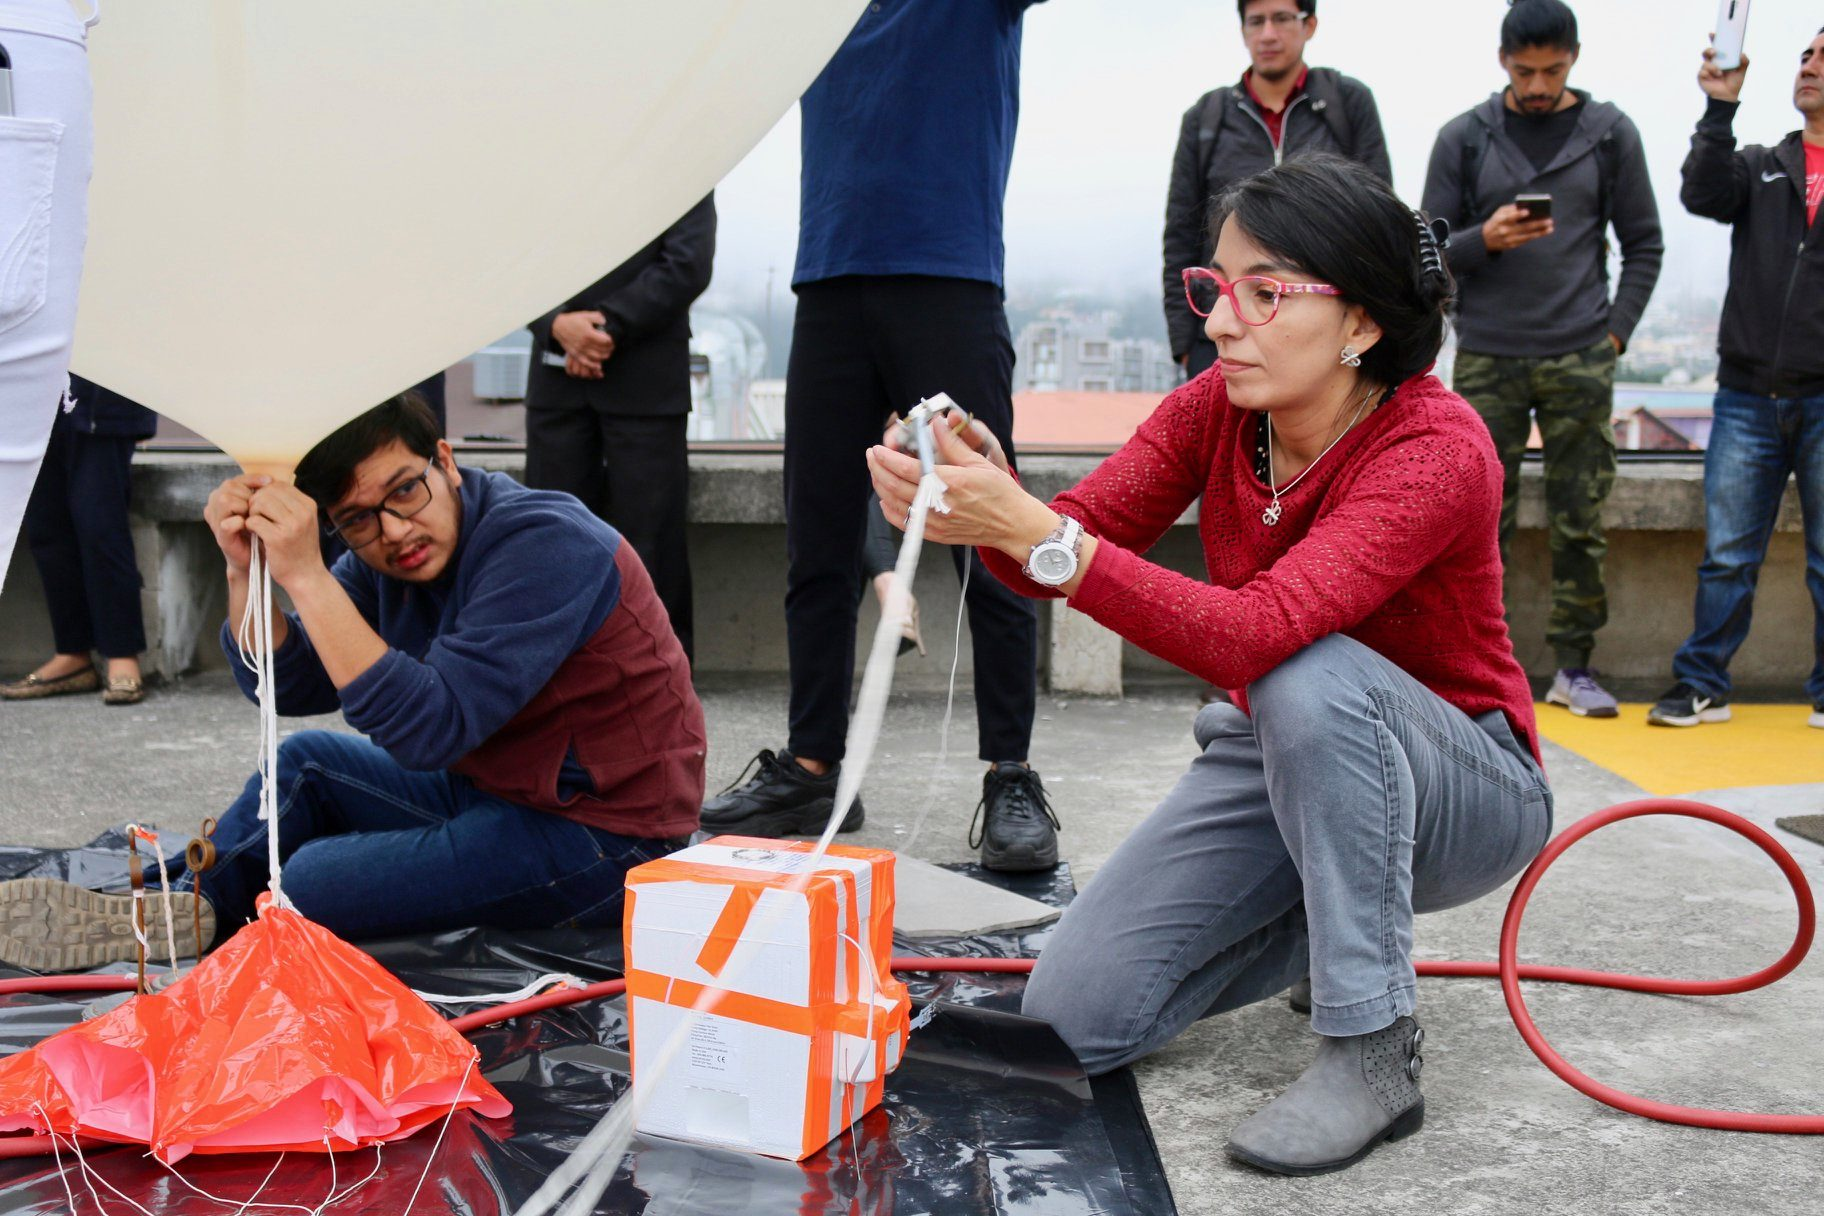 Preparations to launch the first ozonesonde of the ECHOZ project from Universidad San Francisco de Quito on 6 March 2020. On the picture, M. Cazorla and E. Herrera complete balloon filling with helium and anchoring ozonesonde-radiosonde package to platform prior to launching.